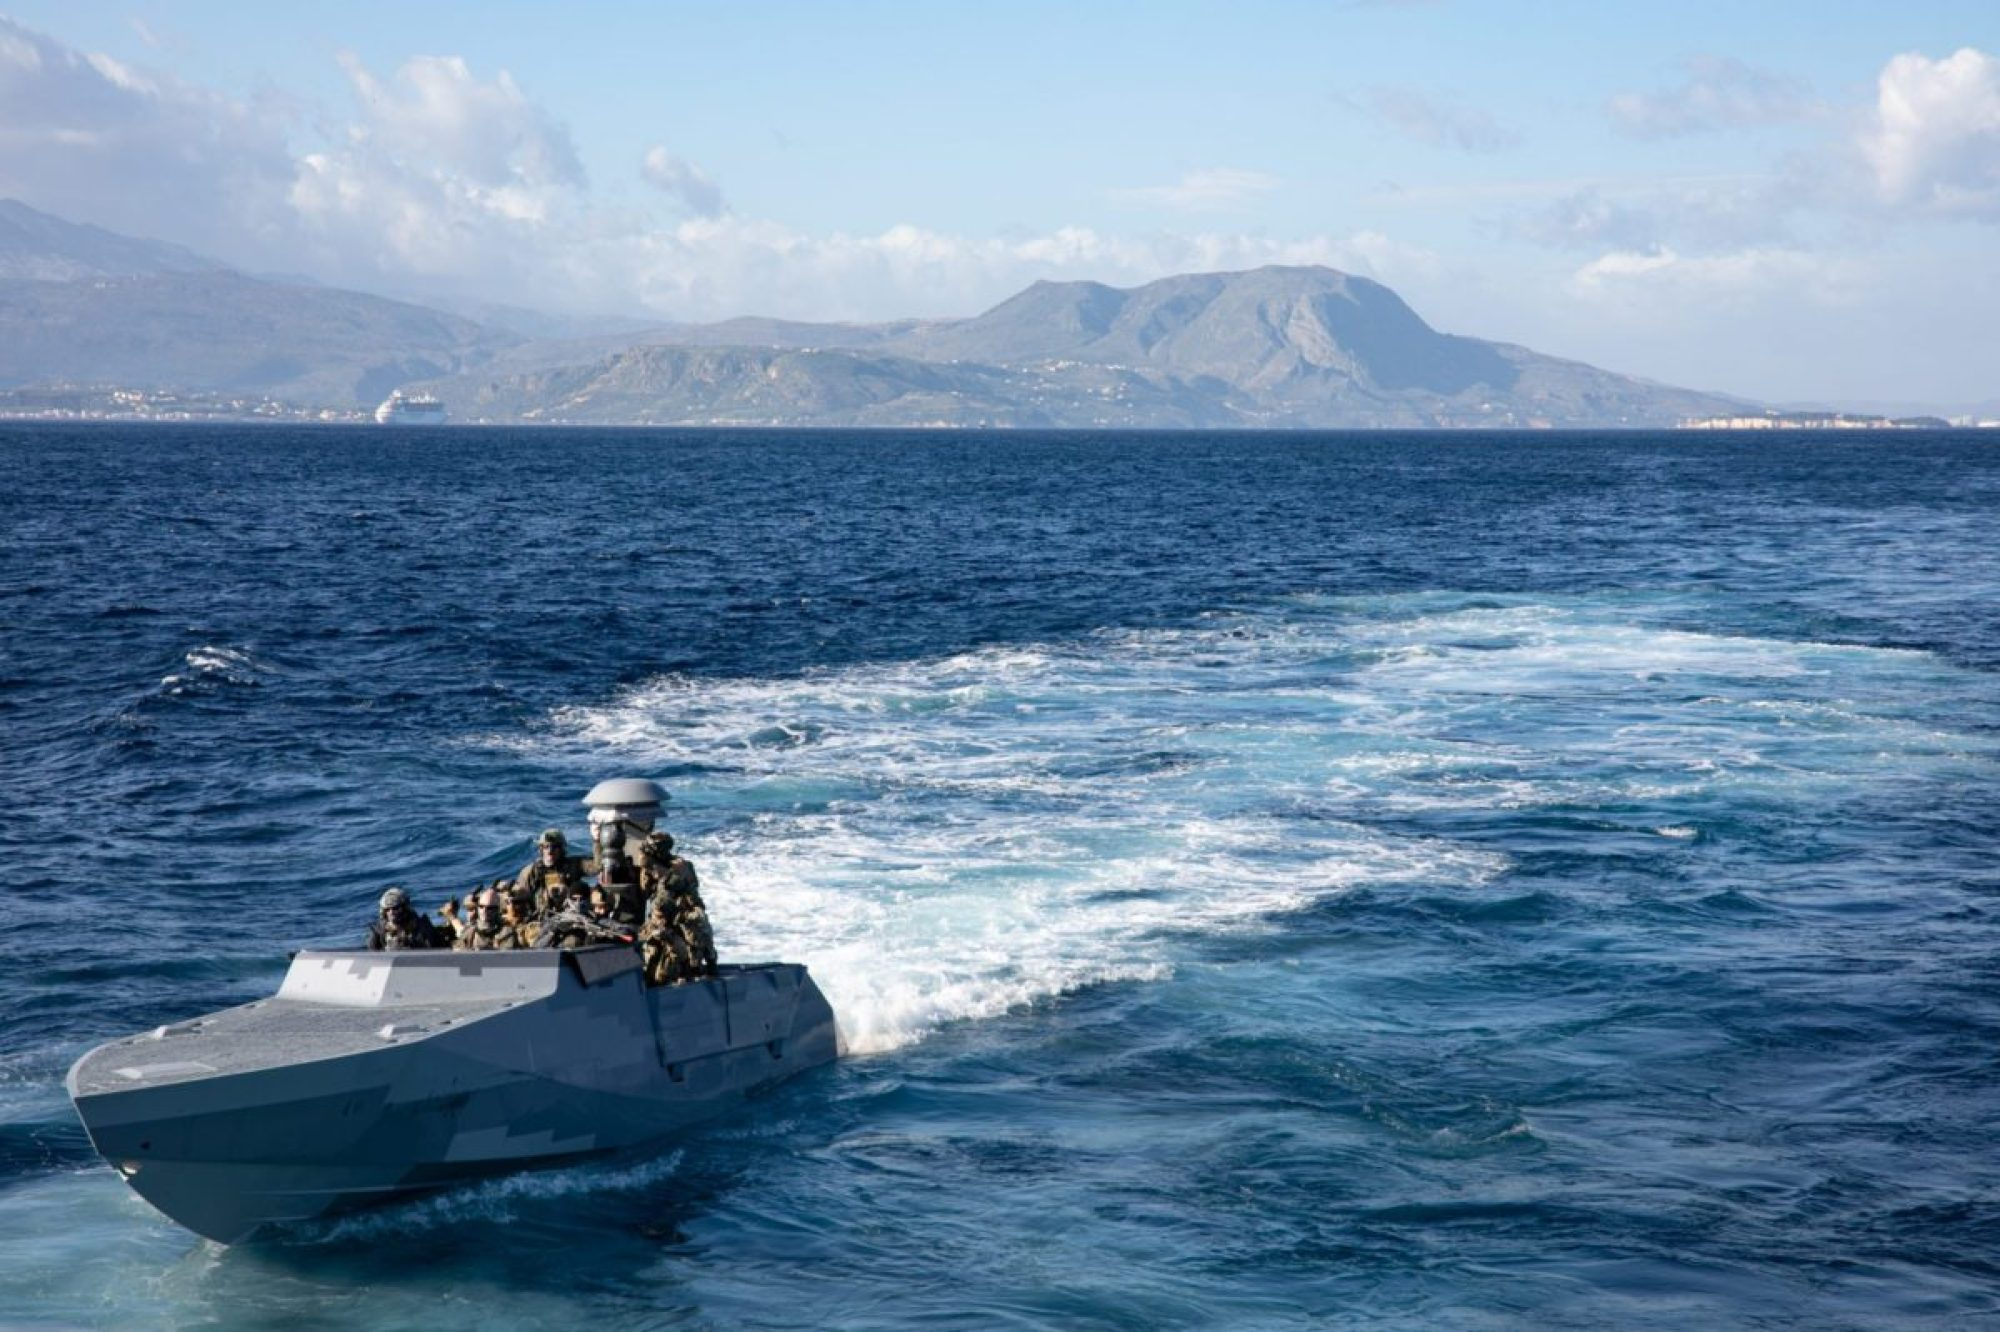 Naval special operations forces from the Greek Underwater Demolition Team (DYK), Cypriot Underwater Demolition Team (UDT), and U.S. Navy Special Warfare Combatant-Craft Crewmen (SWCC) conduct visit board search and seizure (VBSS) evolutions aboard a Combatant Craft Assault (CCA) in Souda Bay, Greece, during a trilateral exercise. (USSOCOM PHOTO BY SGT. MONIQUE O'NEILL)